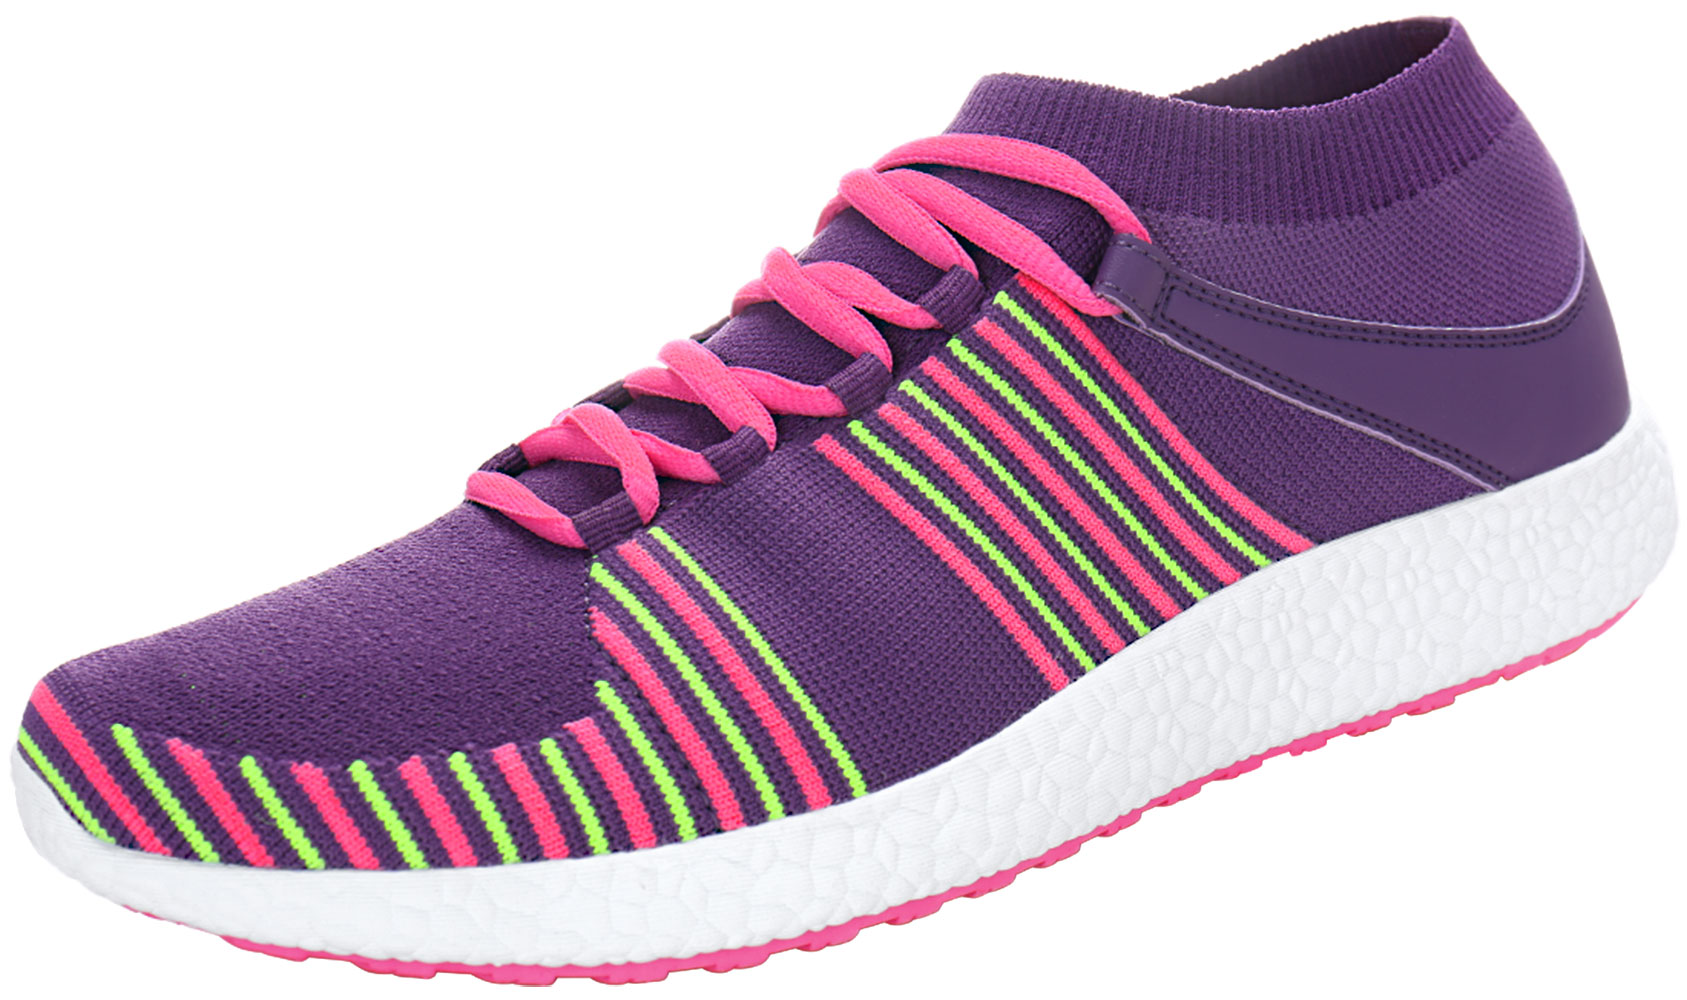 PYPE Women Knitting Mesh Upper Striped Lace Up Training Shoes Purple US 8.5